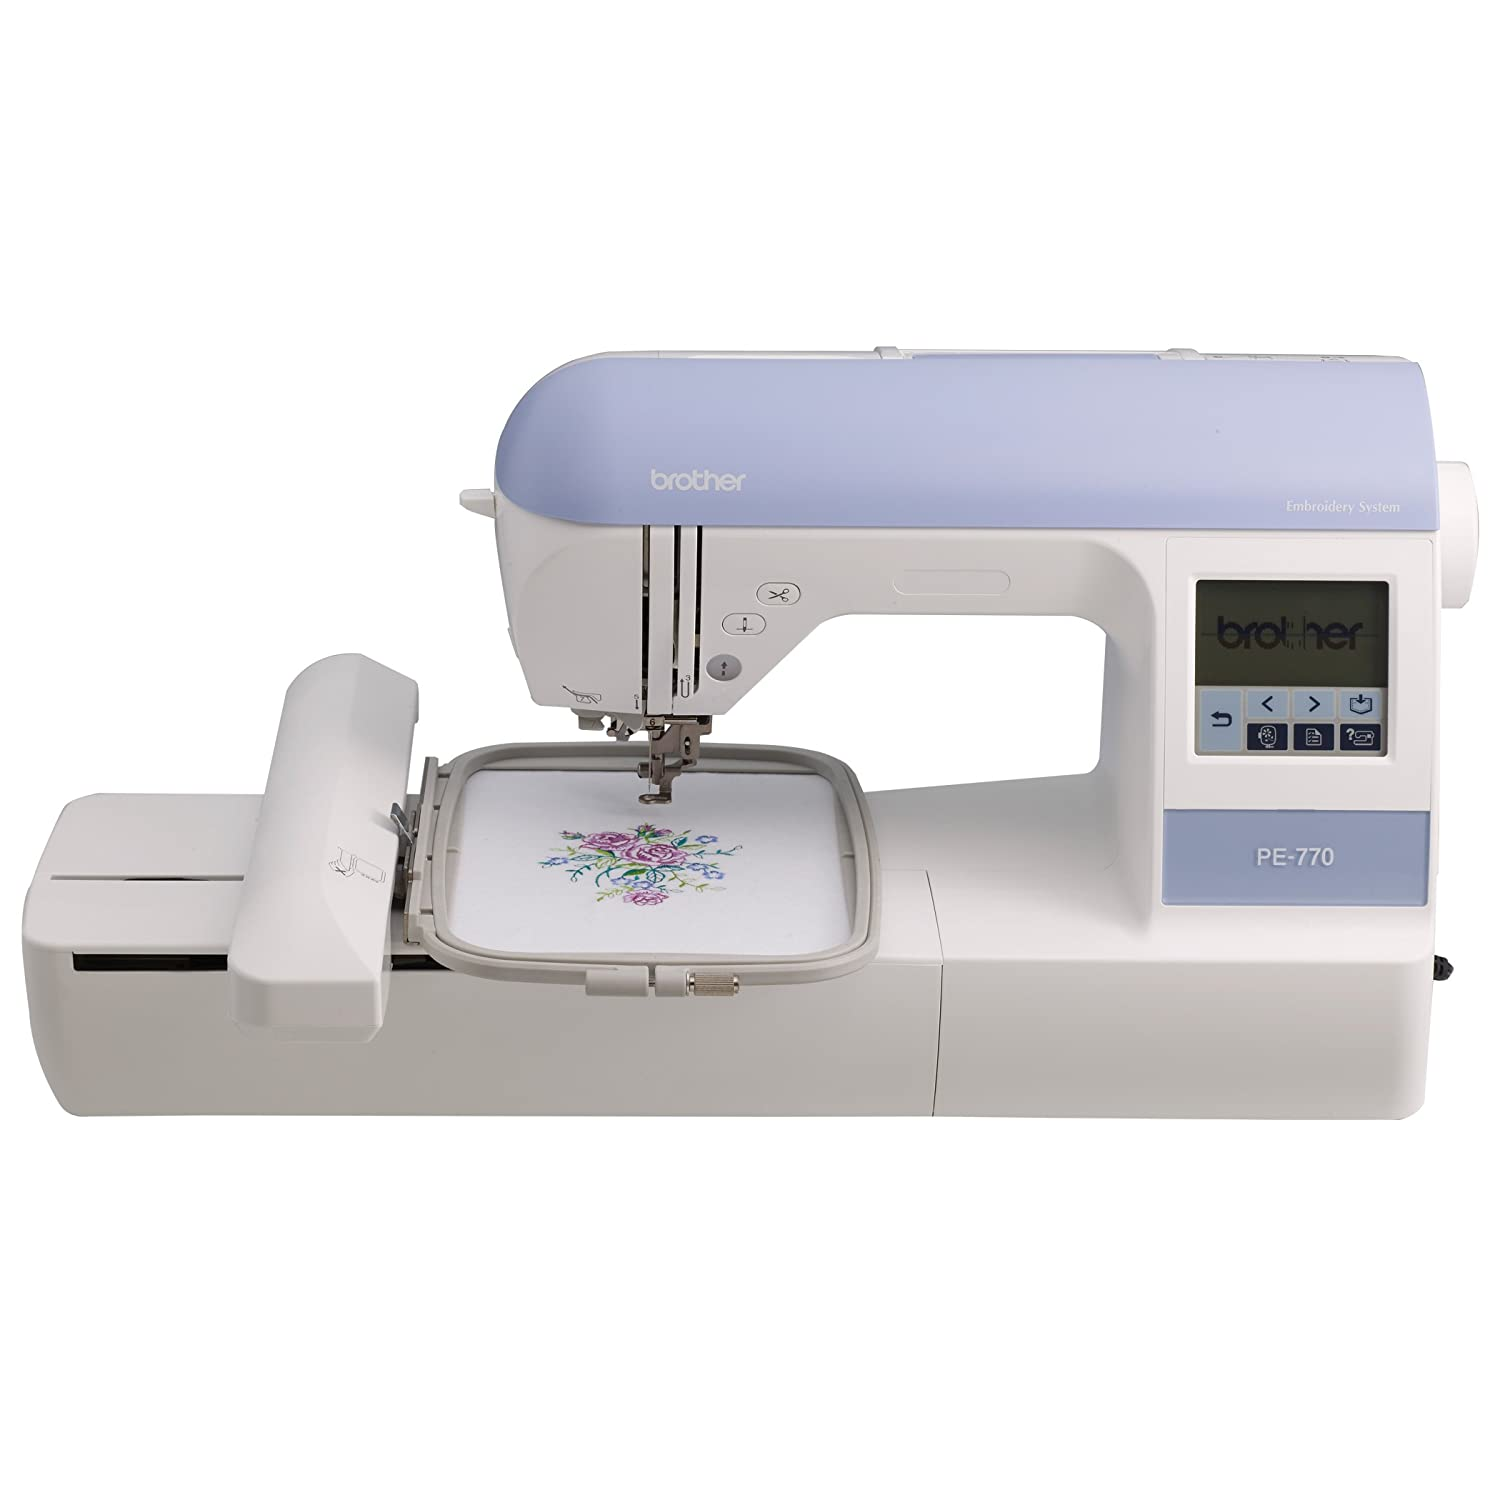 Brother PE770 – A Professional Embroidery Machine